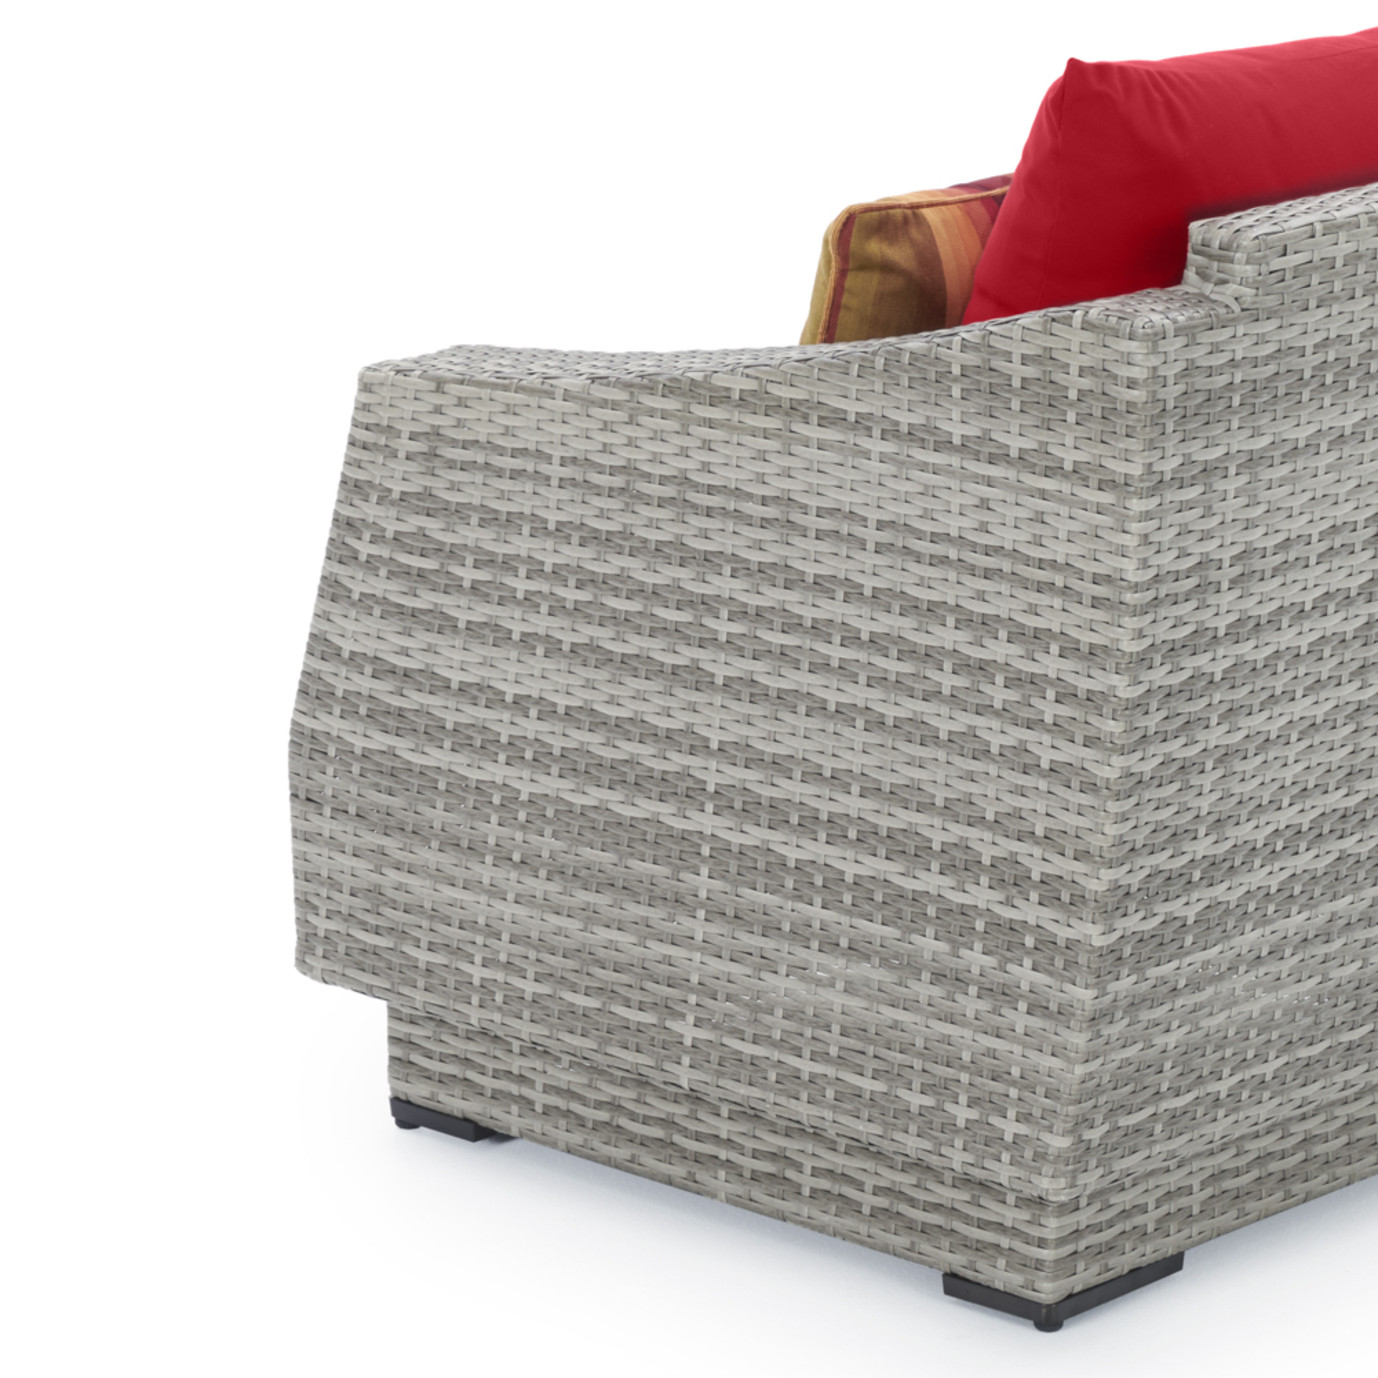 Cannes™ 8pc Sofa & Club Chair Set - Sunset Red